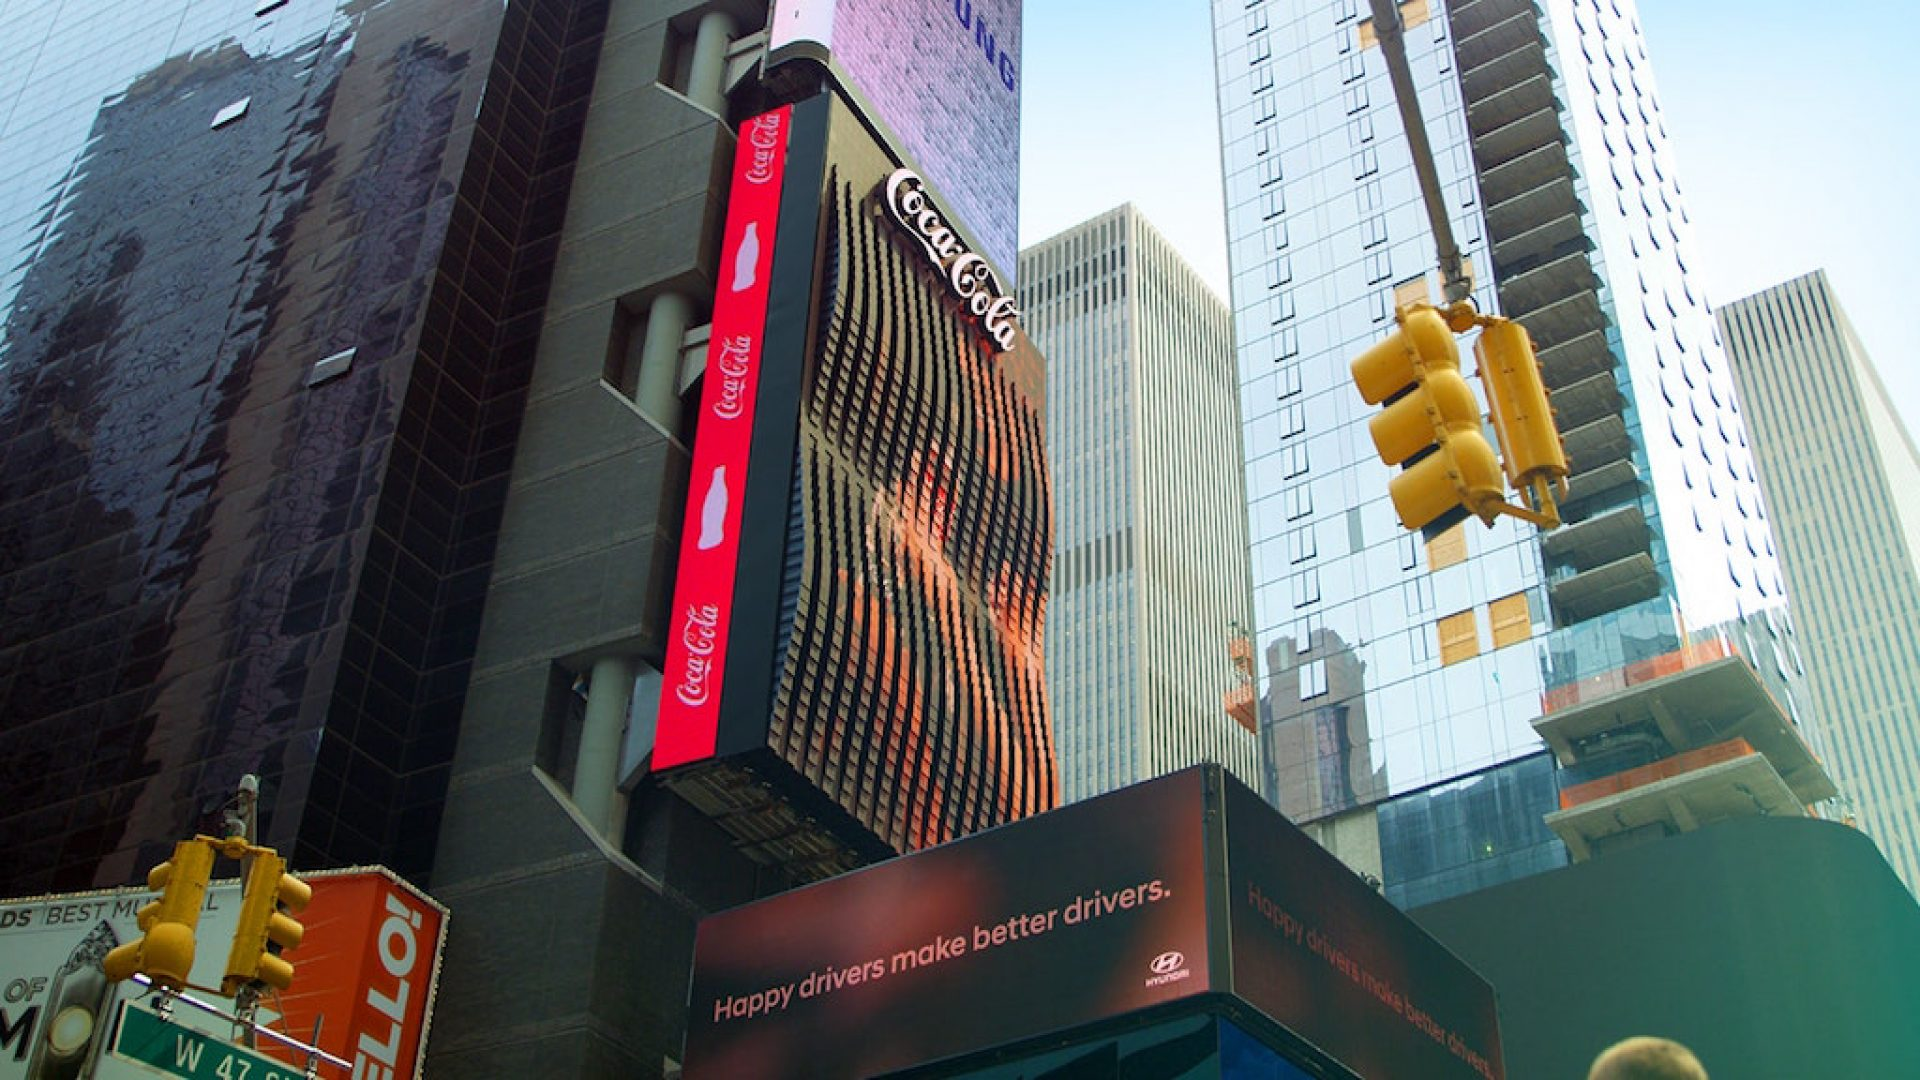 The world's first giant robotic LED 3D screen in New York by Coca-Cola